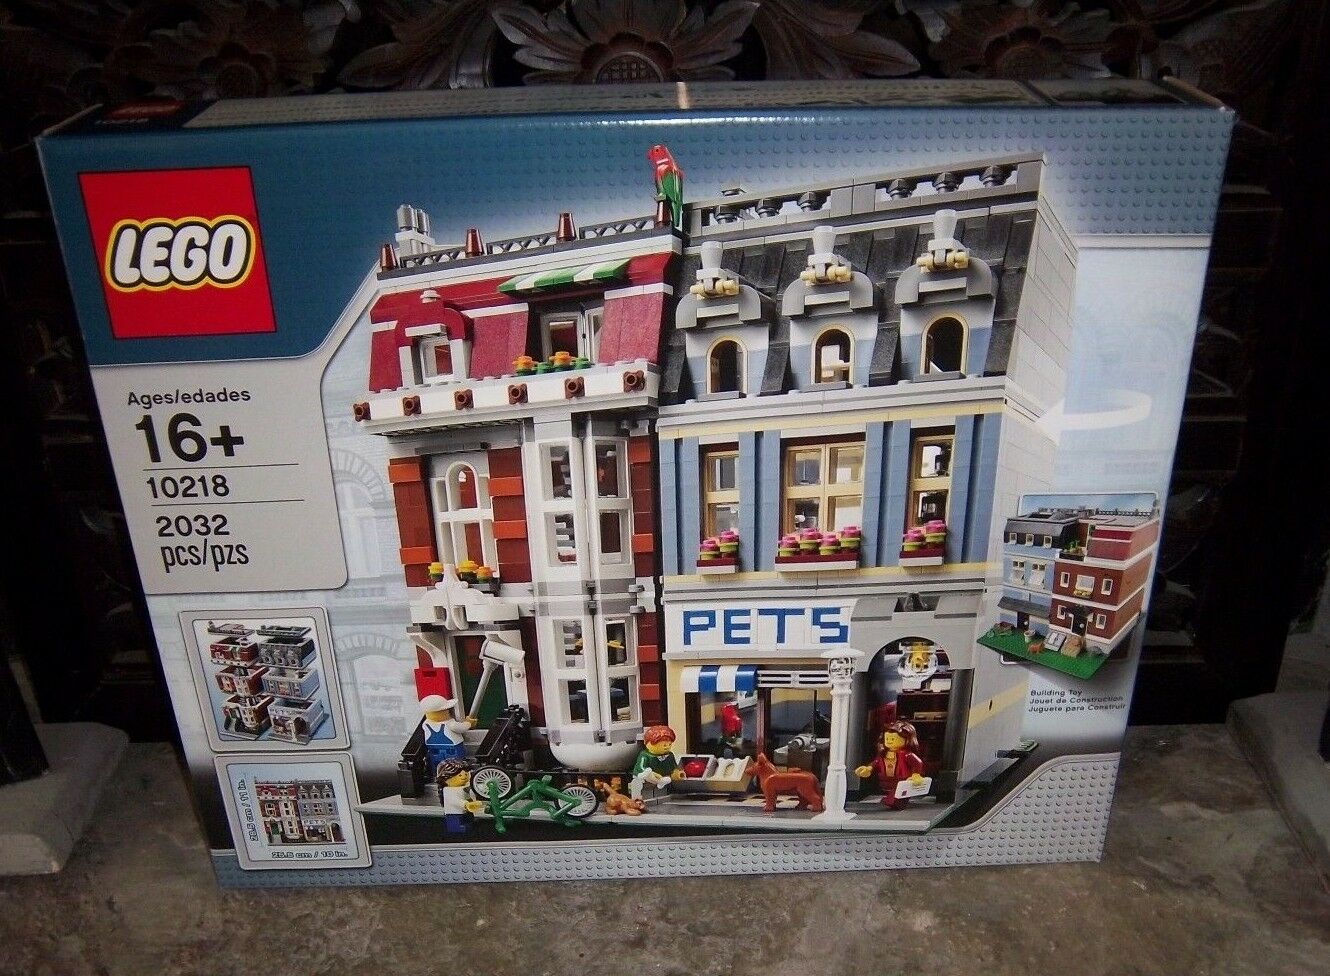 LEGO CREATOR 10218 PET SHOP nouveau IN BOX -  SEALED  - RETIrouge SET  pour la vente en gros